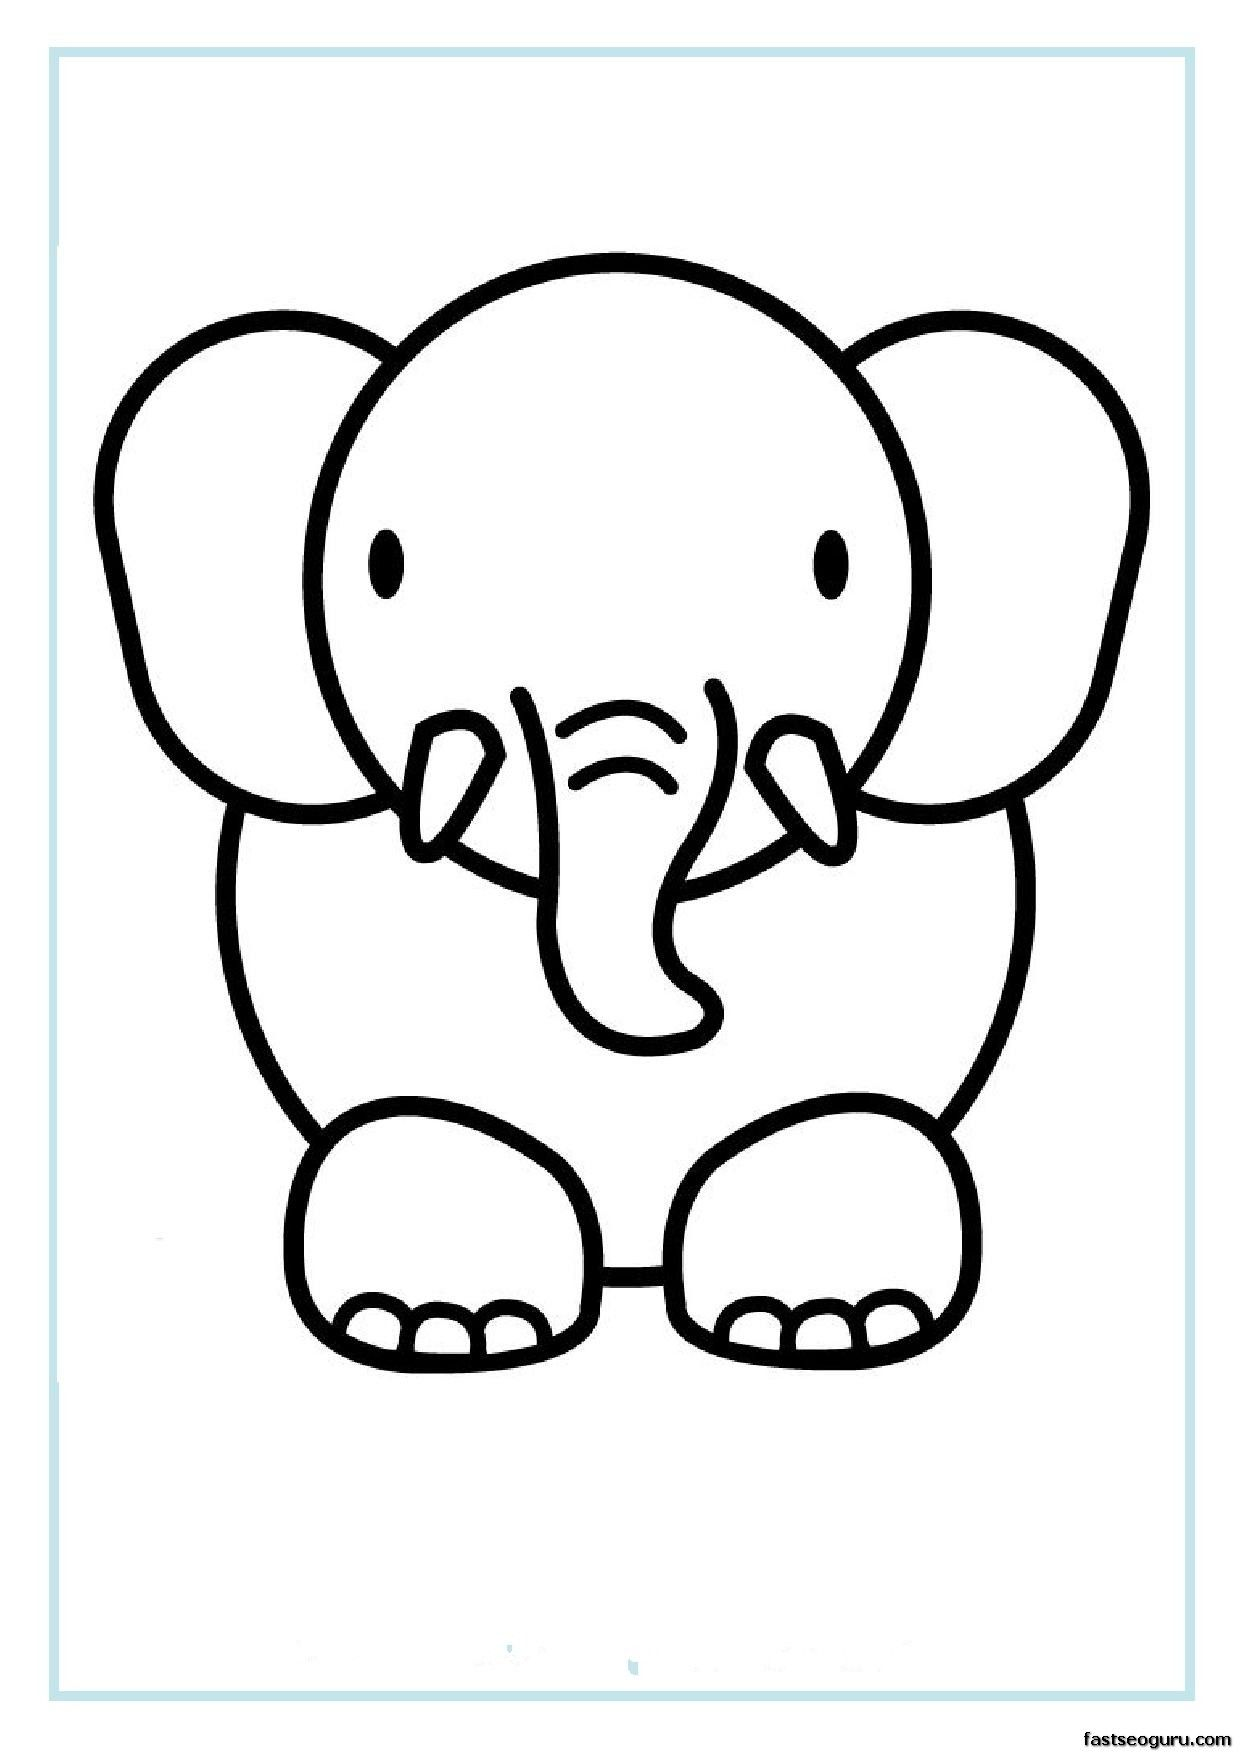 printable coloring pages animals 3 - Print Out Coloring Pages